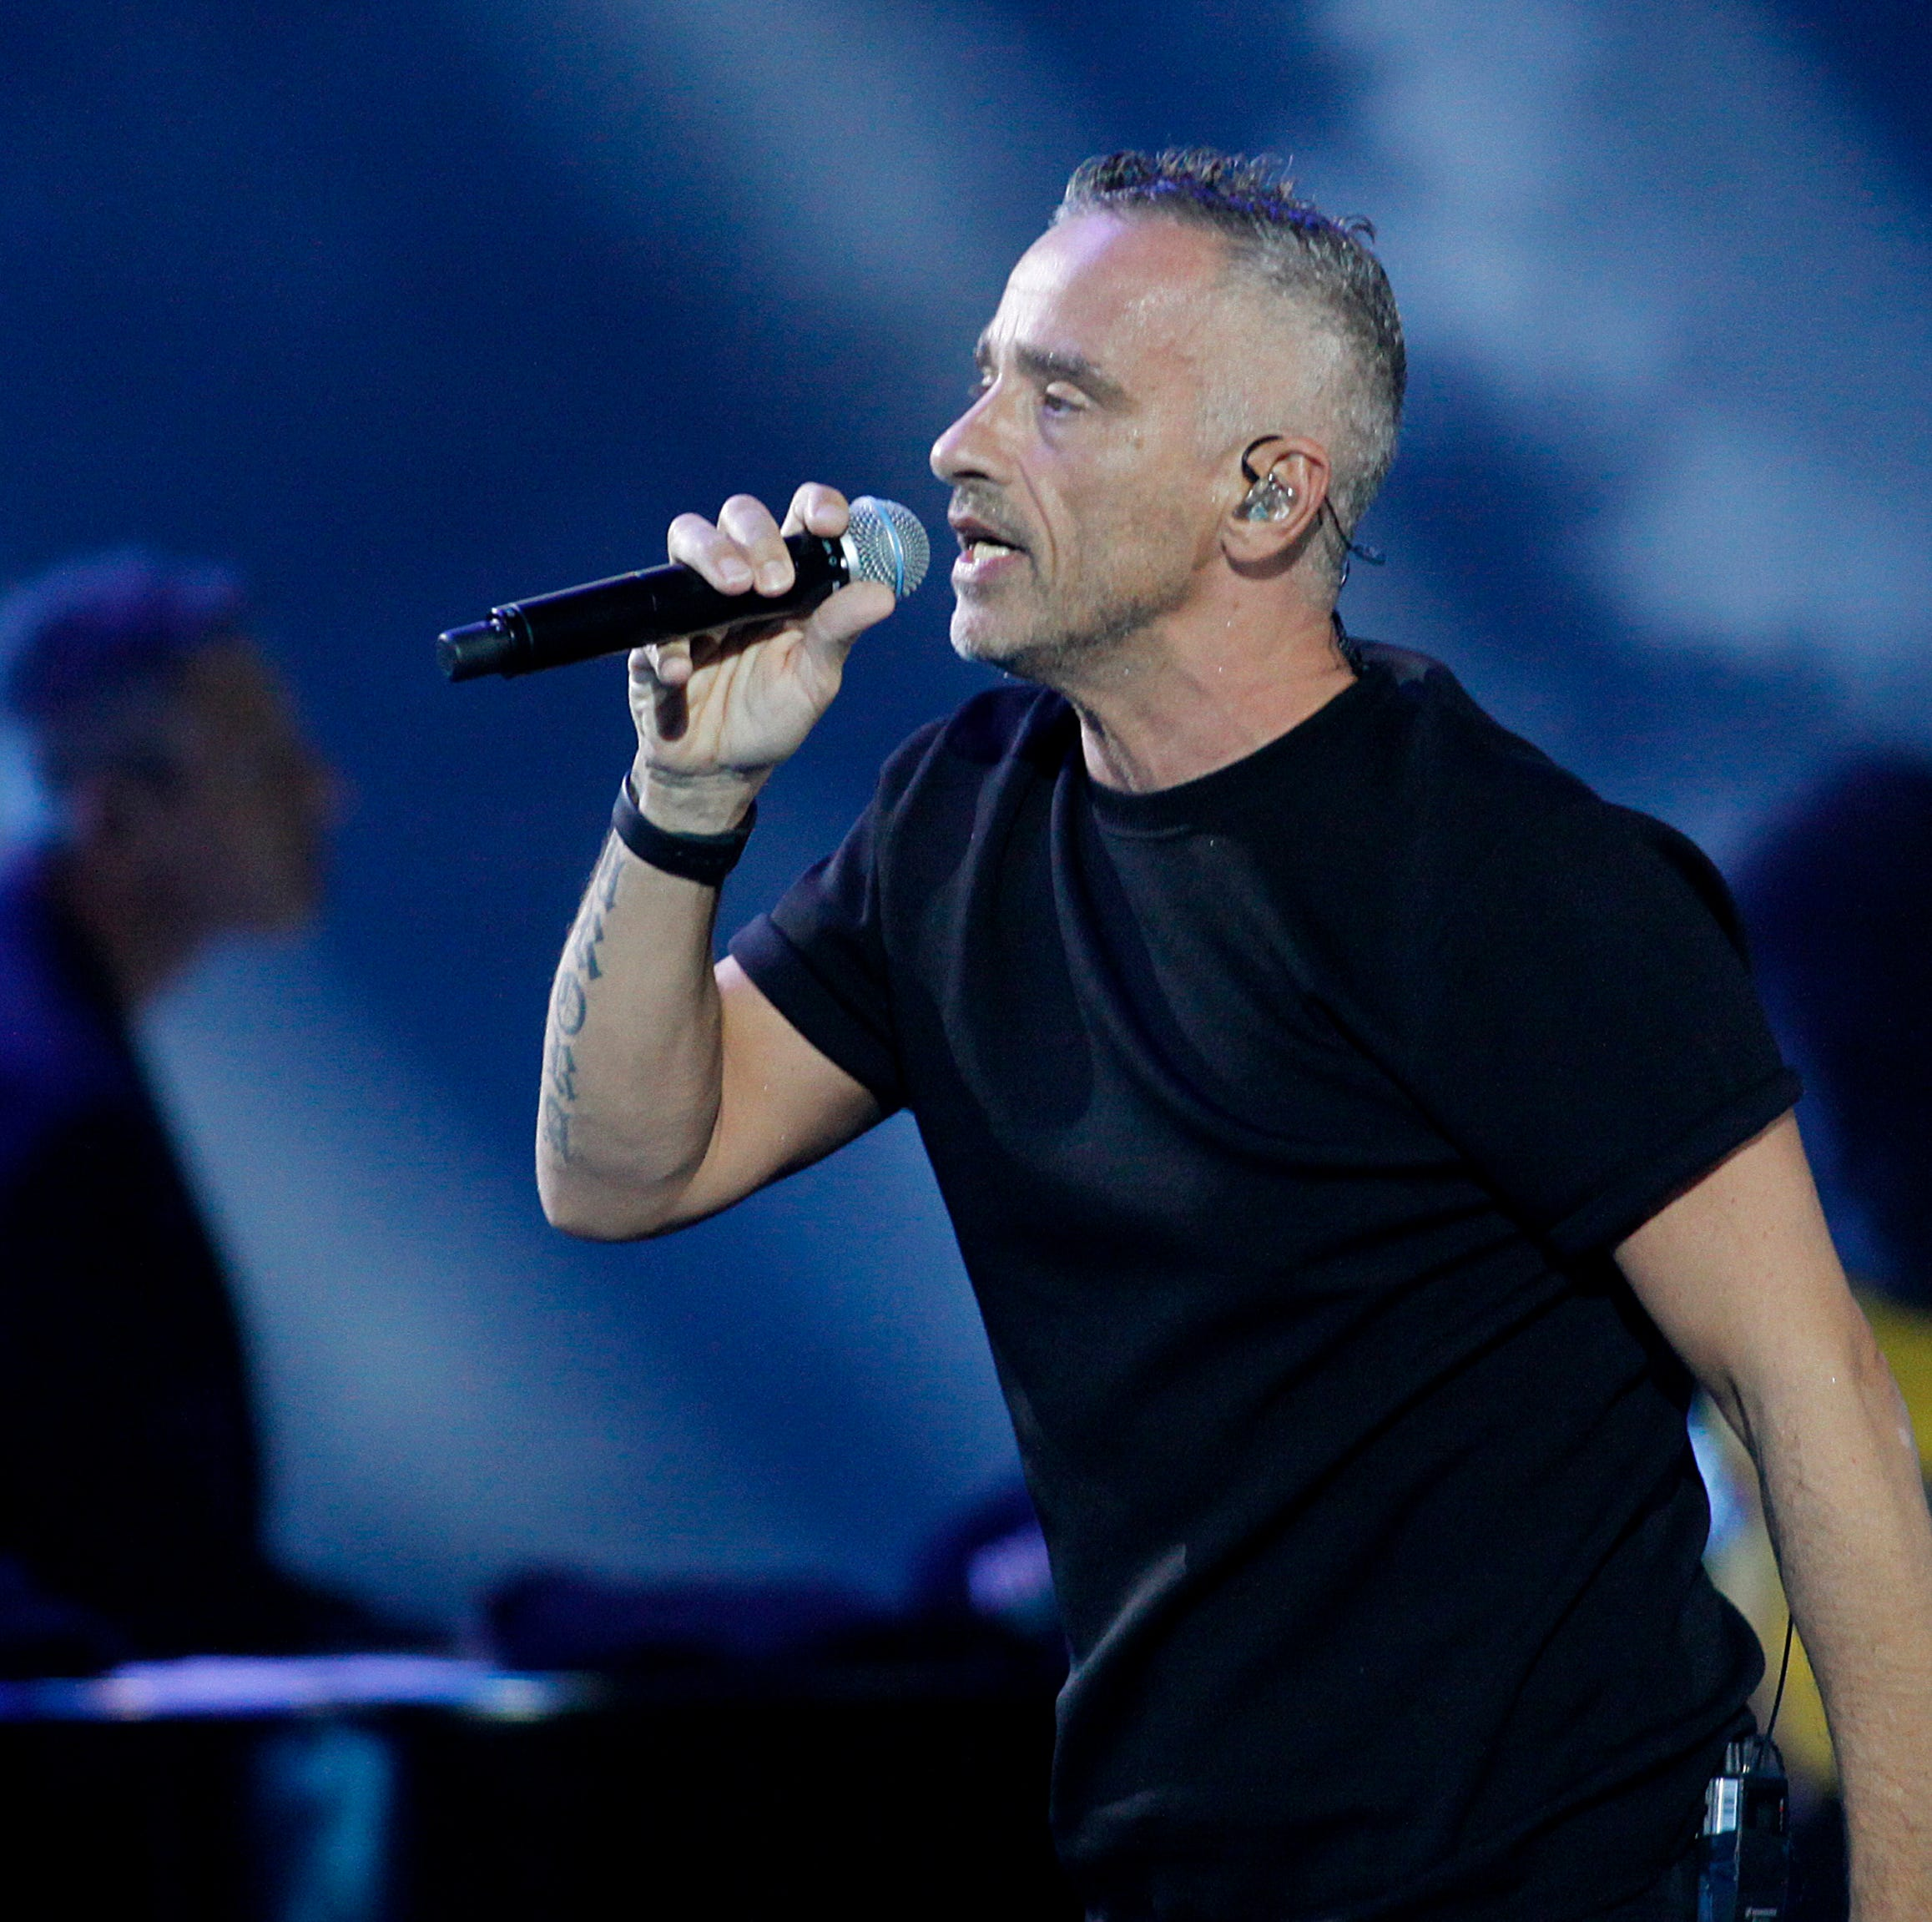 Eros Ramazzotti cancels American tour dates to recover from surgery on his vocal cords